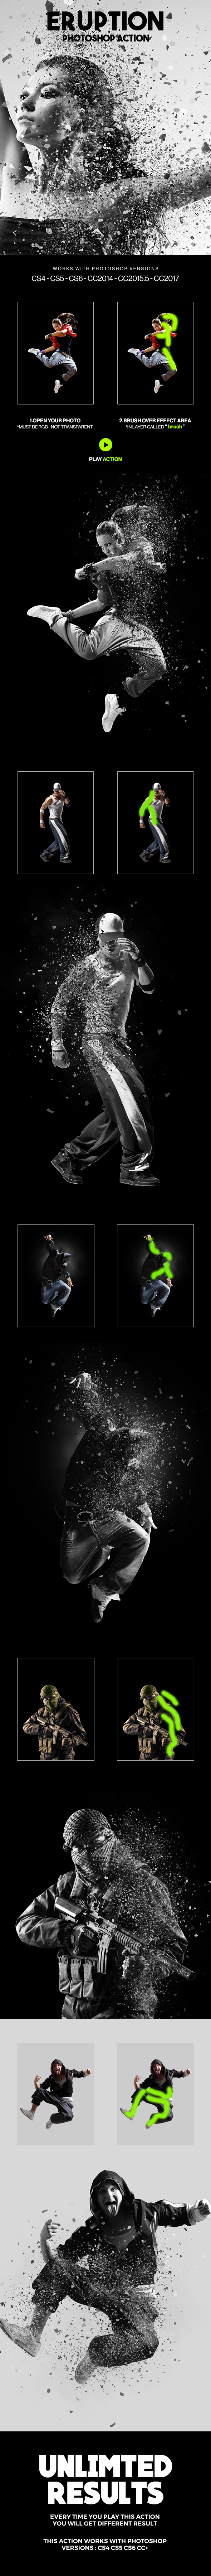 Eruption Photoshop Action - Photo Effects Actions